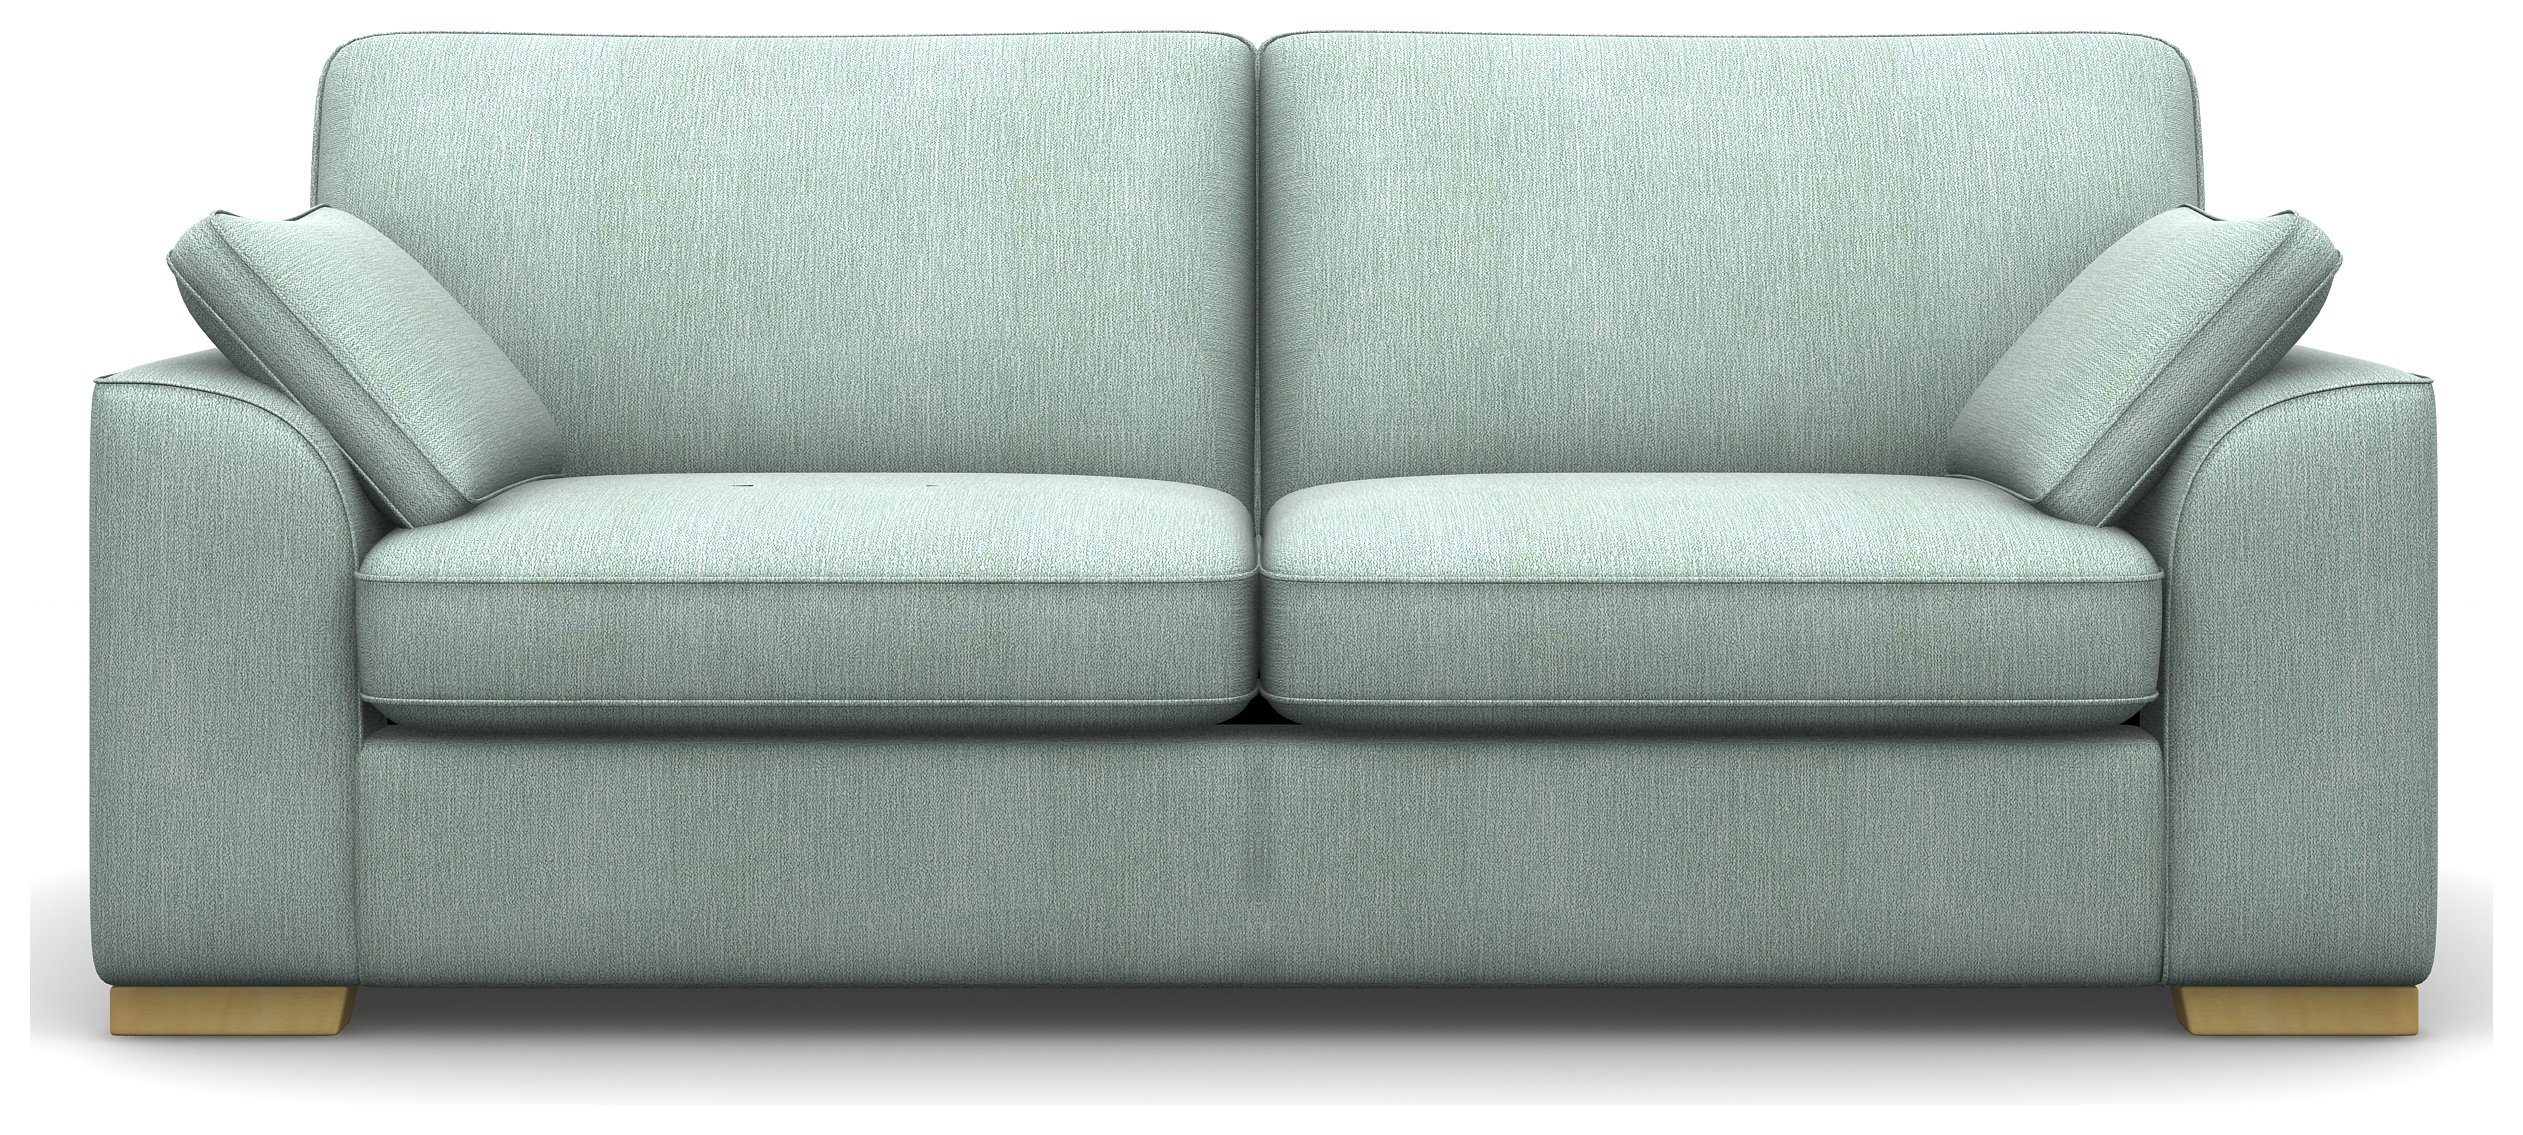 fabric chesterfield sofa argos throw blankets for heart of house lincoln 3 seater duck egg